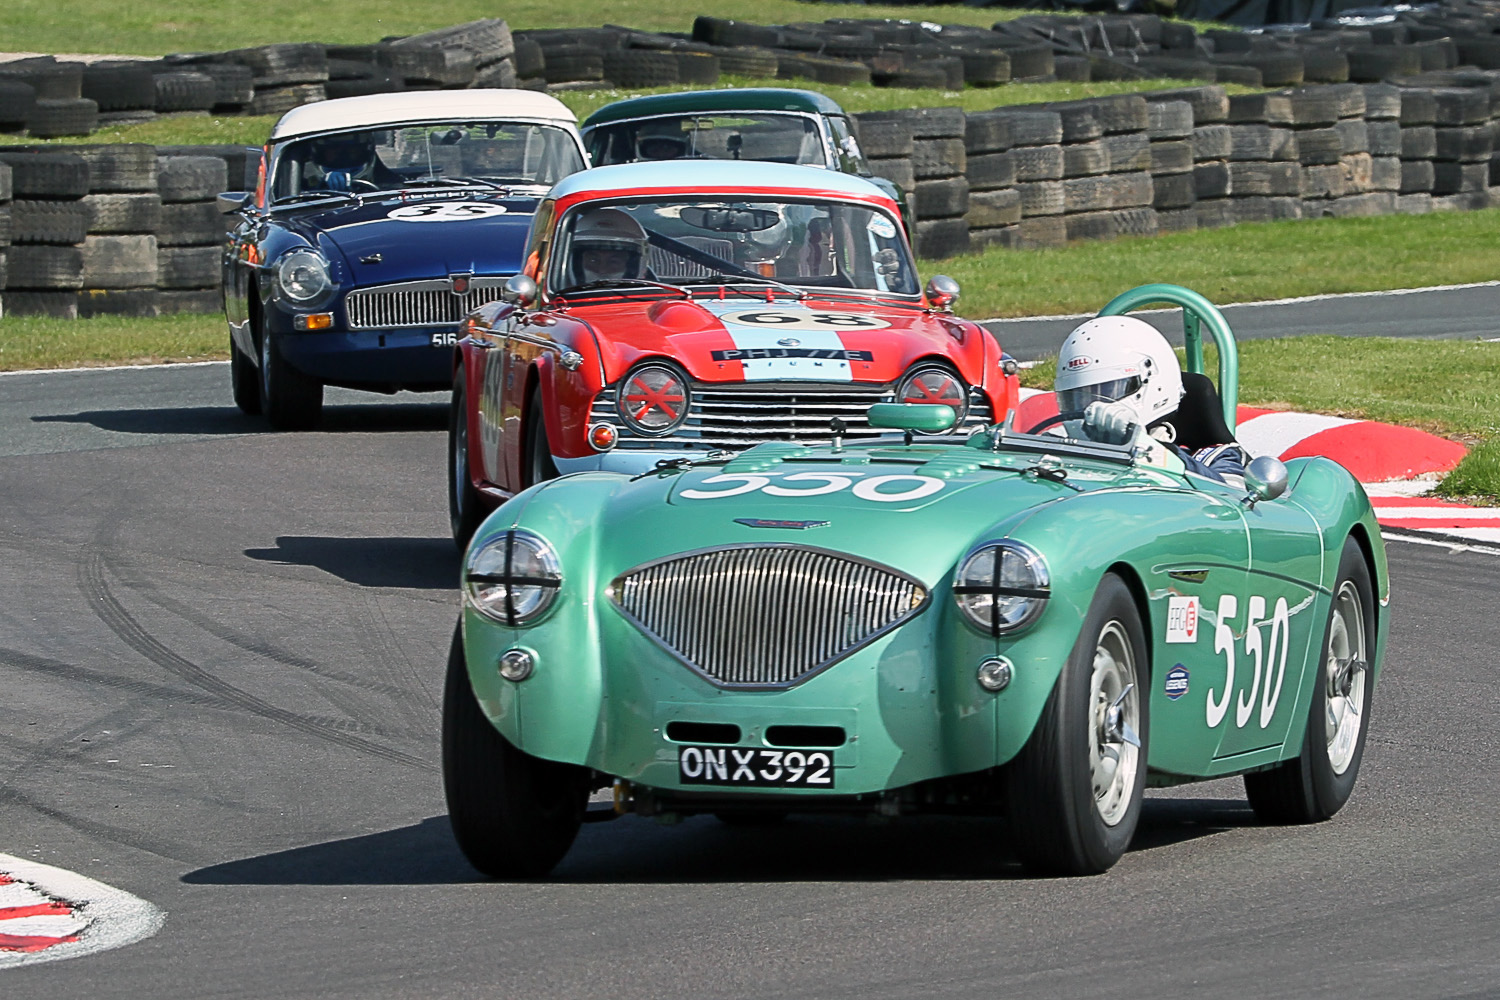 Vintage racing, Three-hour relay, 'Daytona at Dusk' highlight the schedule, ClassicCars.com Journal